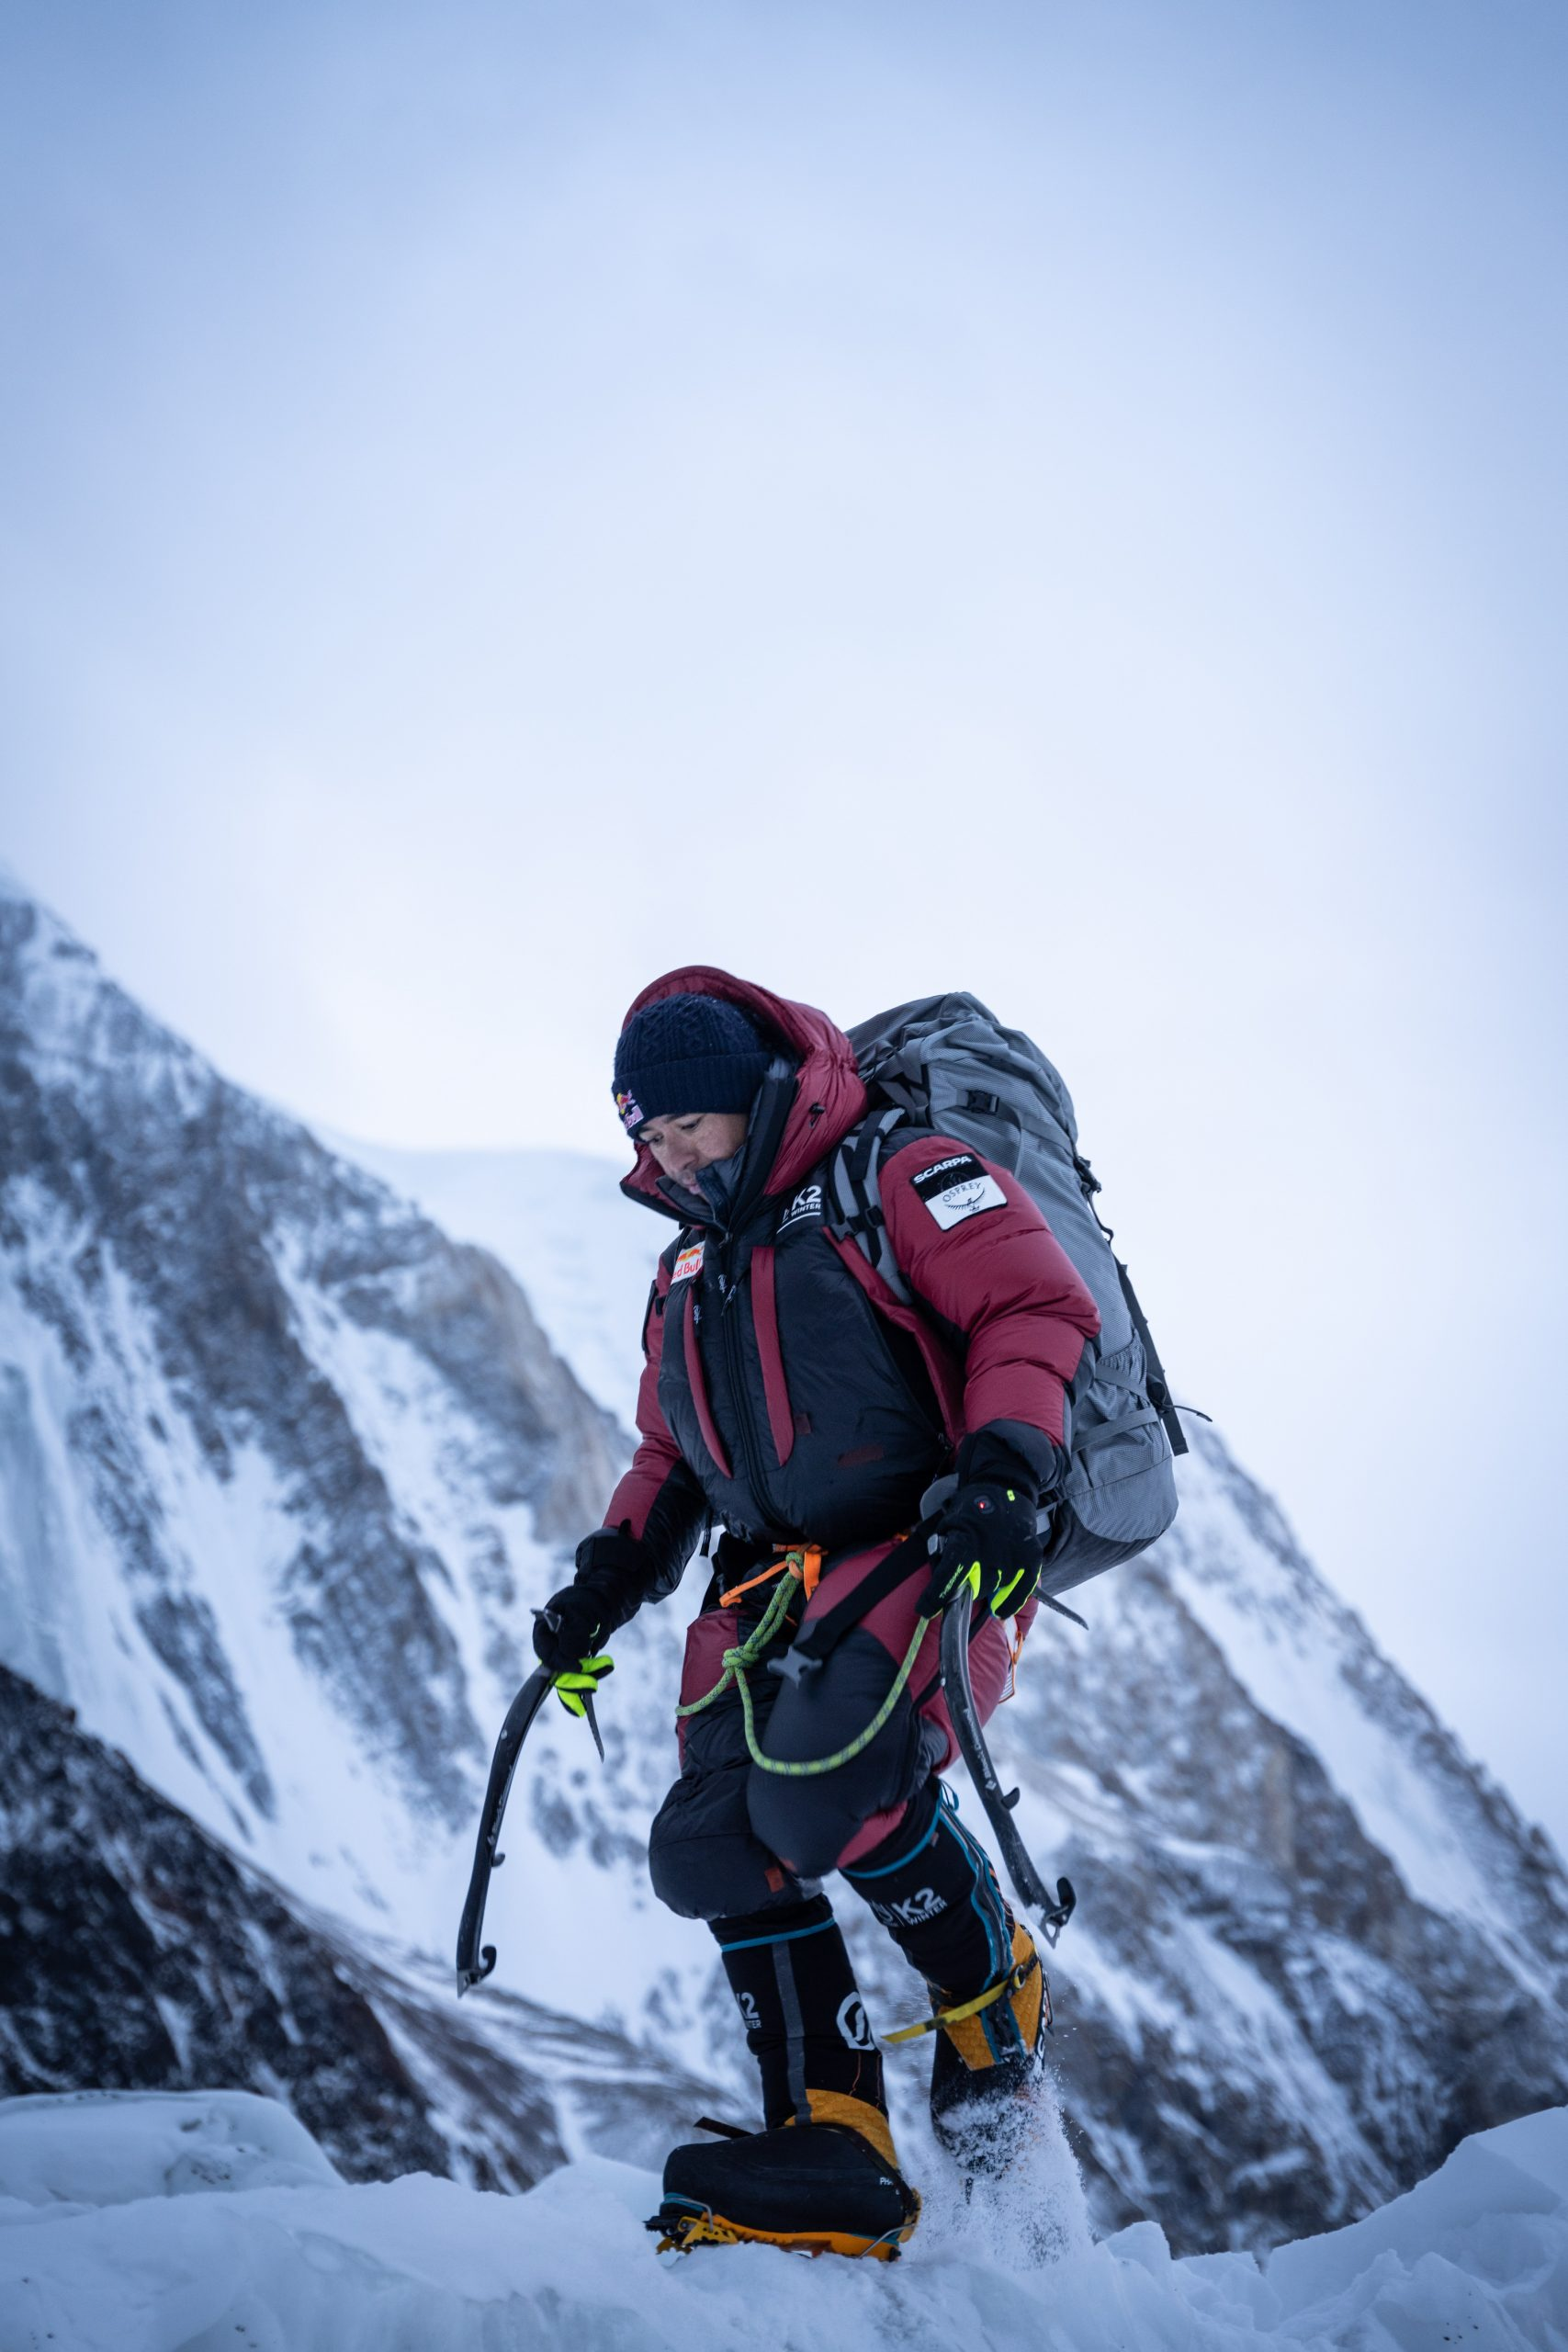 Nims Purja before his winter attack on K2 on January 5, 2021. Photo: Nimsdai / Red Bull Content Pool.